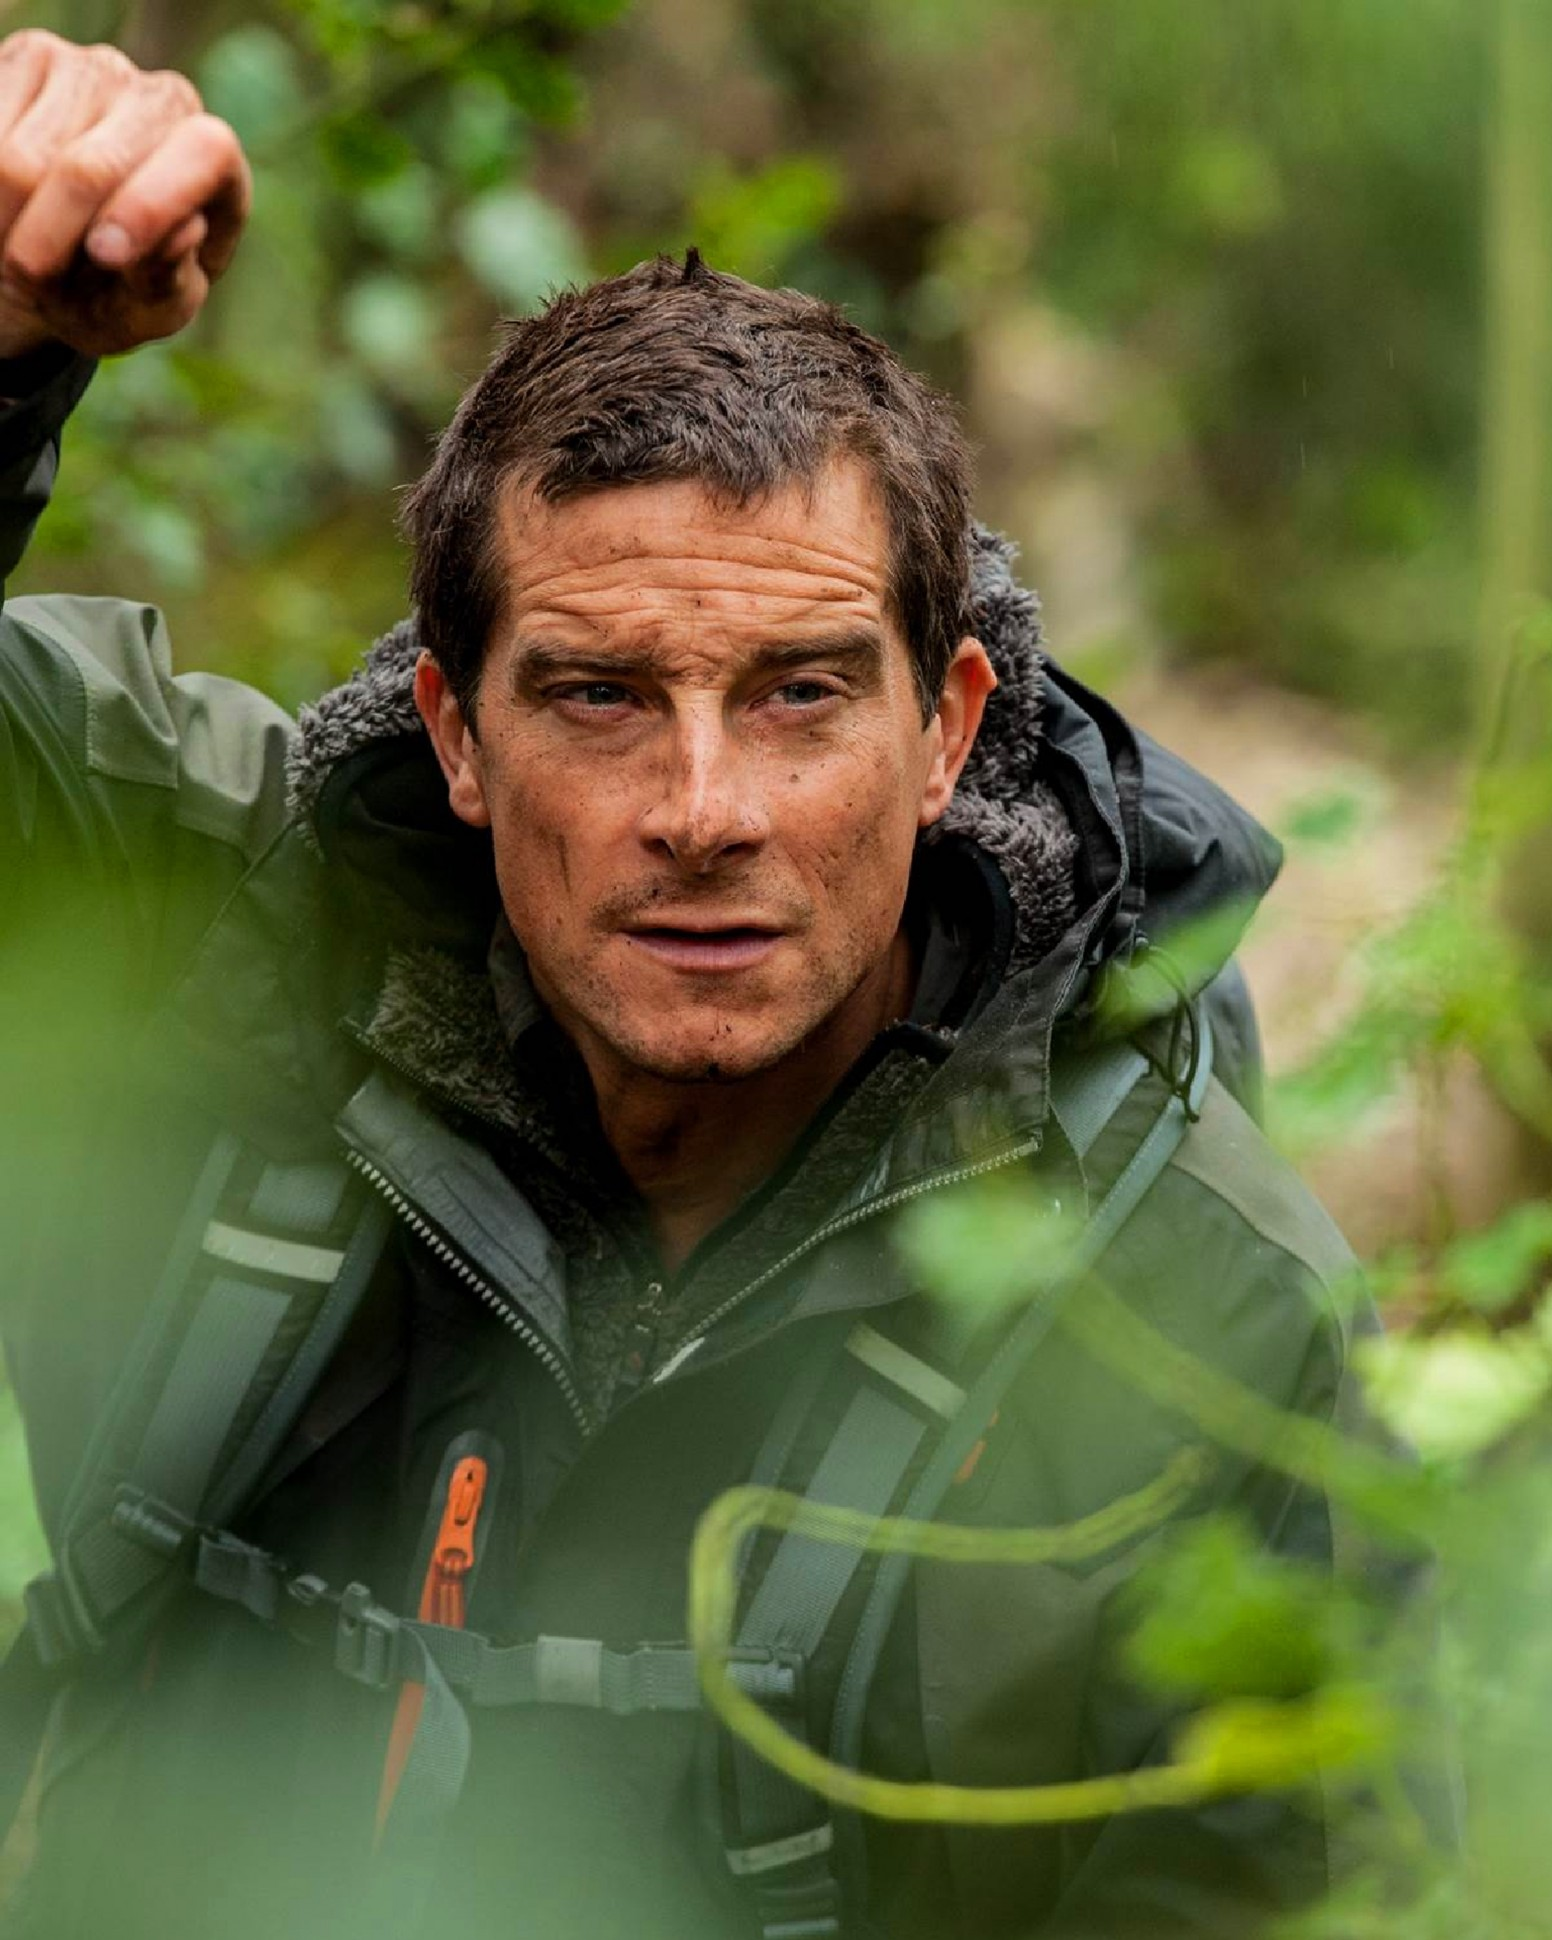 Bear Grylls Backgrounds, Compatible - PC, Mobile, Gadgets| 1552x1940 px